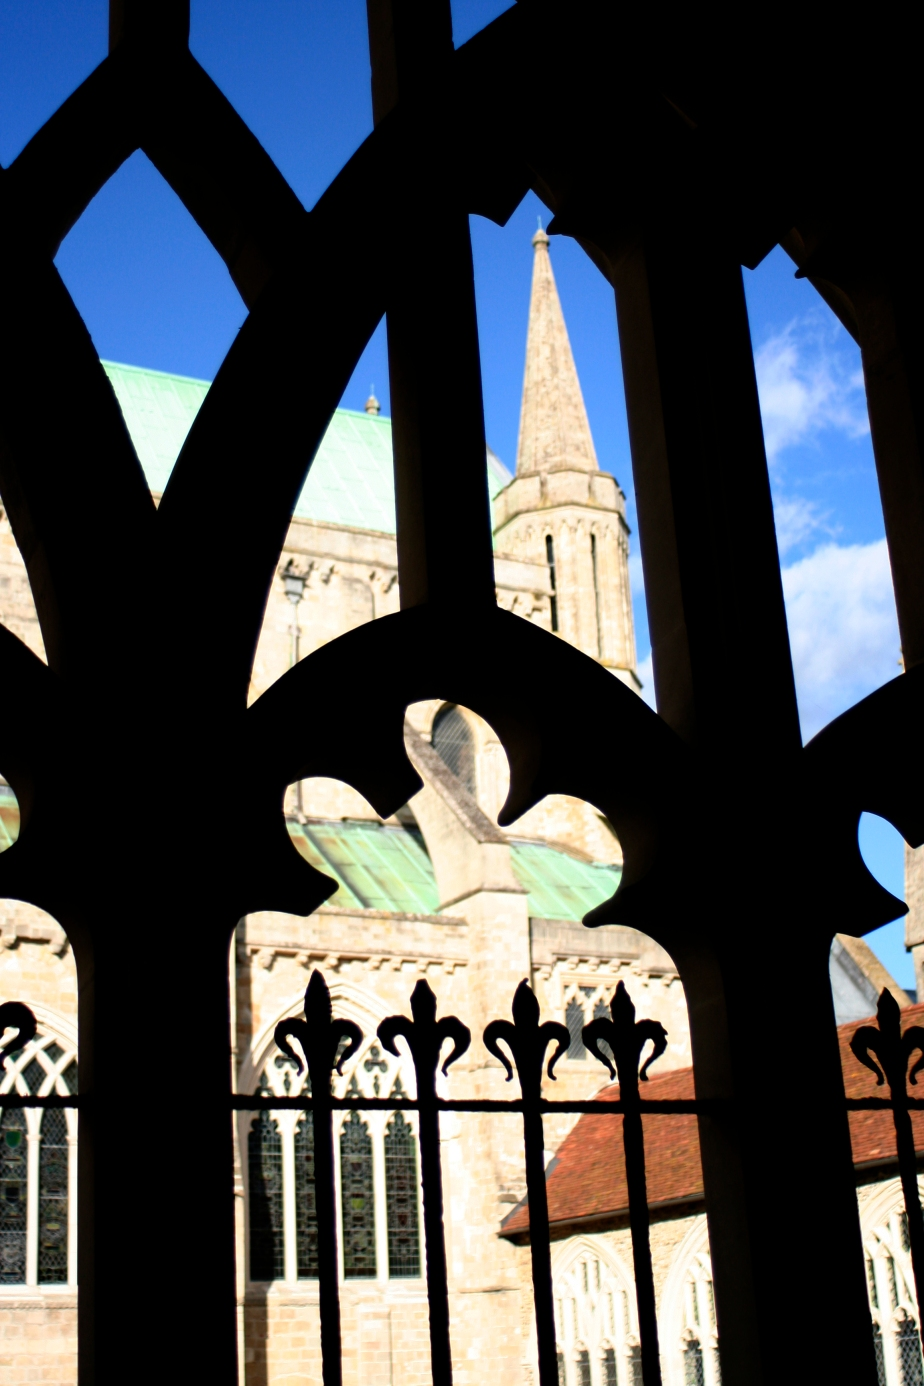 Chichester cathedral seen through cloister arches